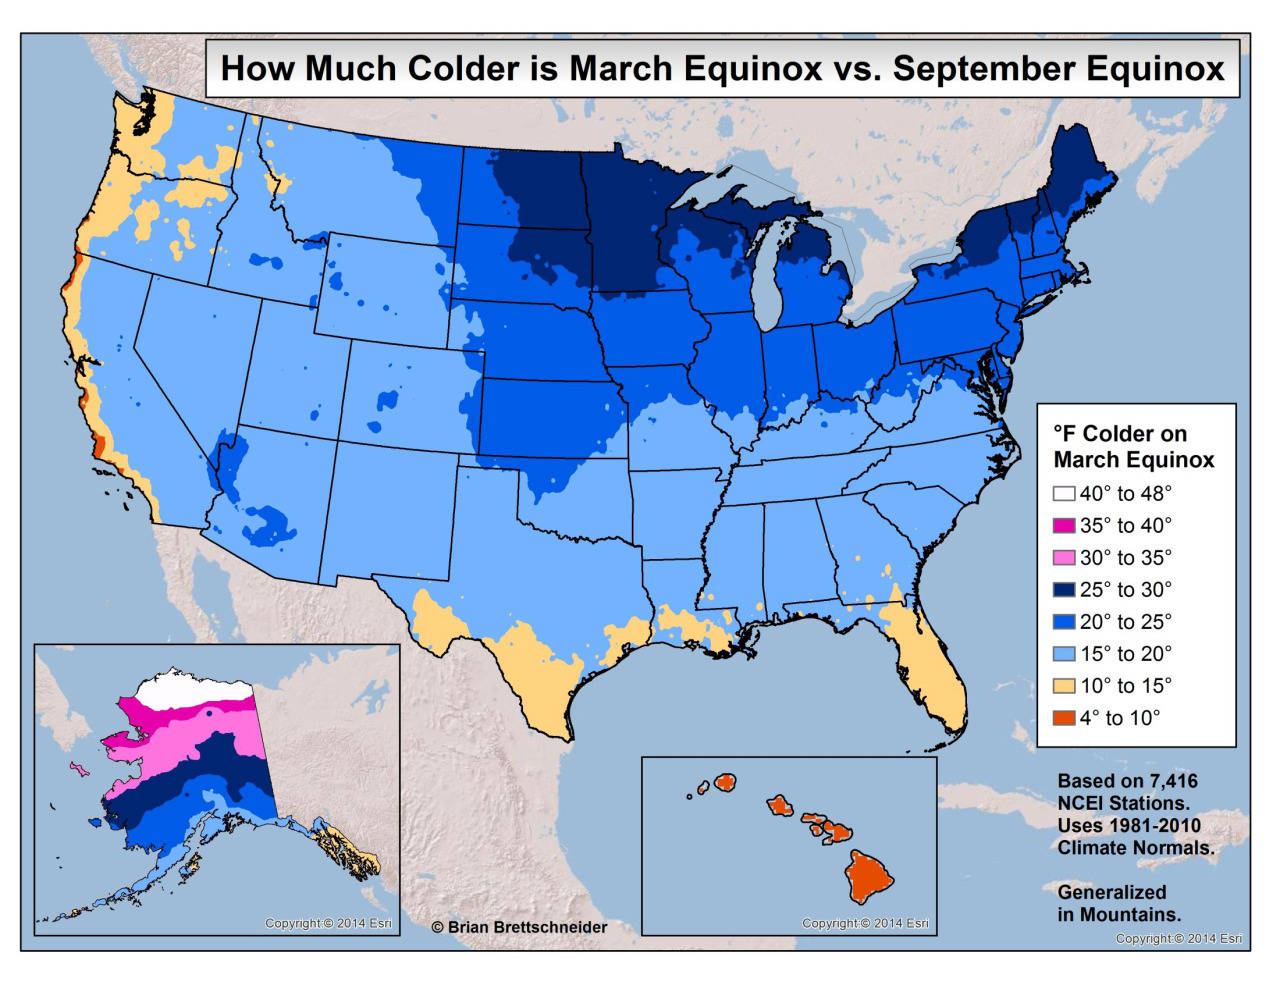 How much colder is March Equinox vs. September Equinox